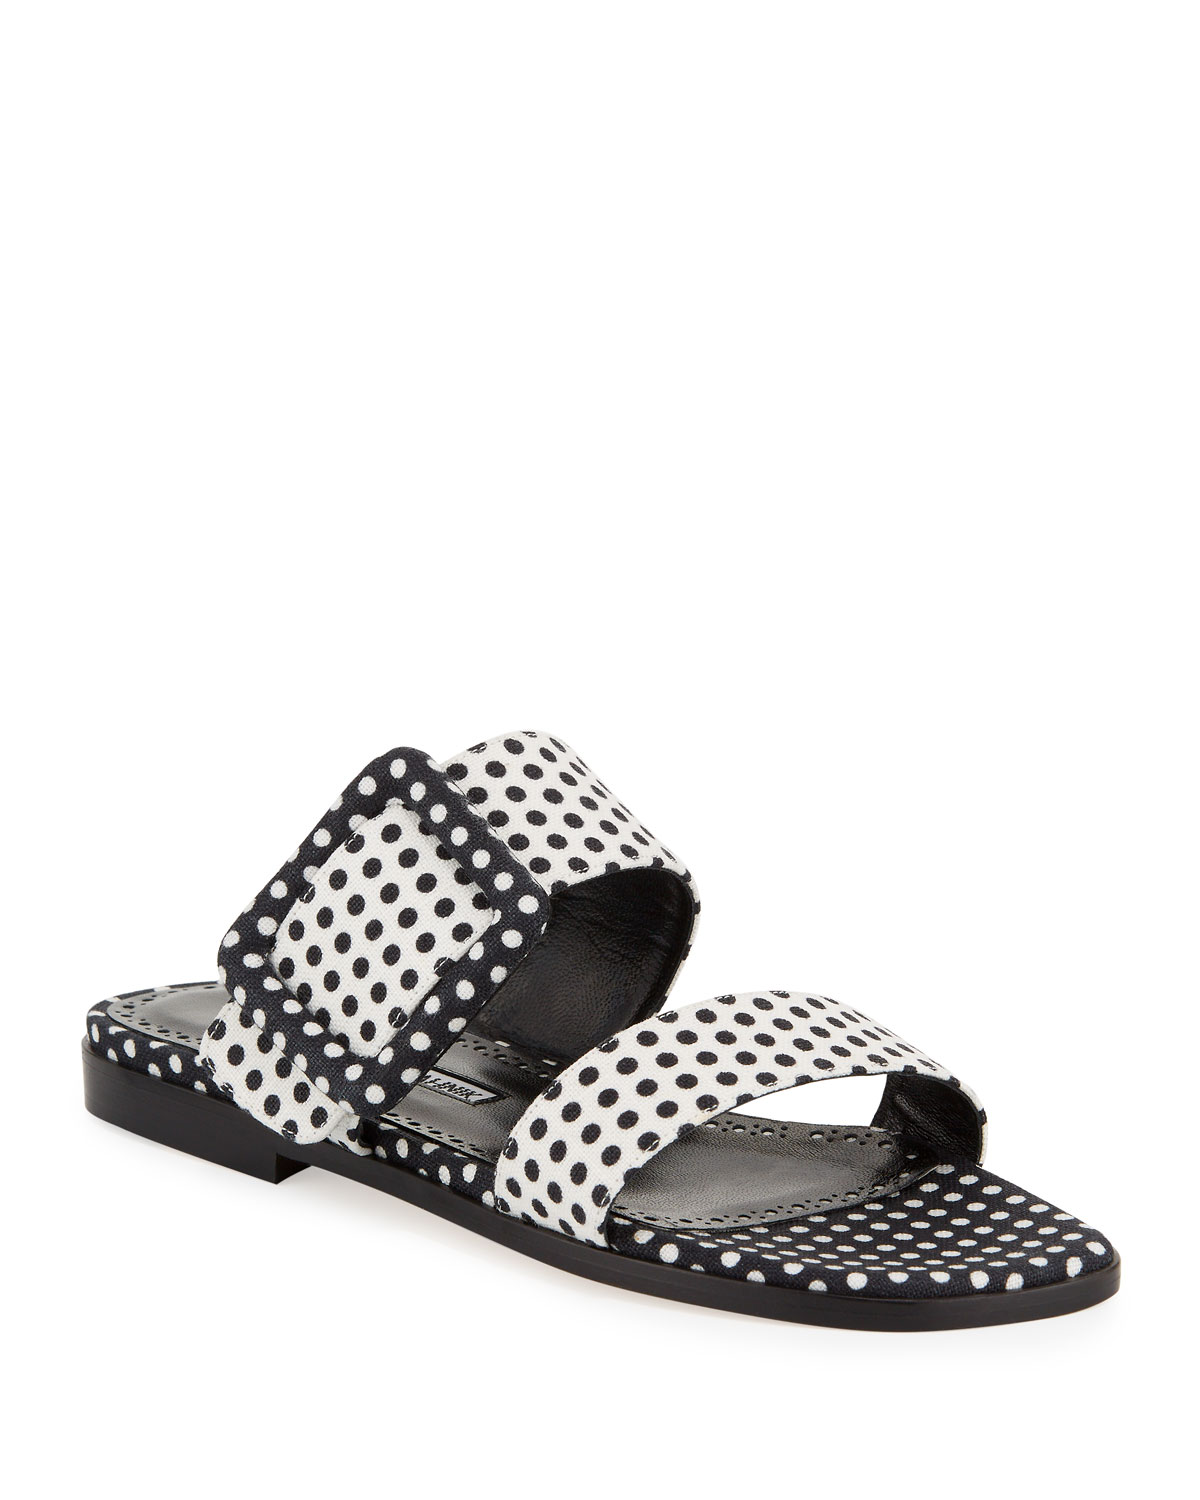 Manolo Blahnik Tituba Flat Polka-Dot Buckle Slide Sandals